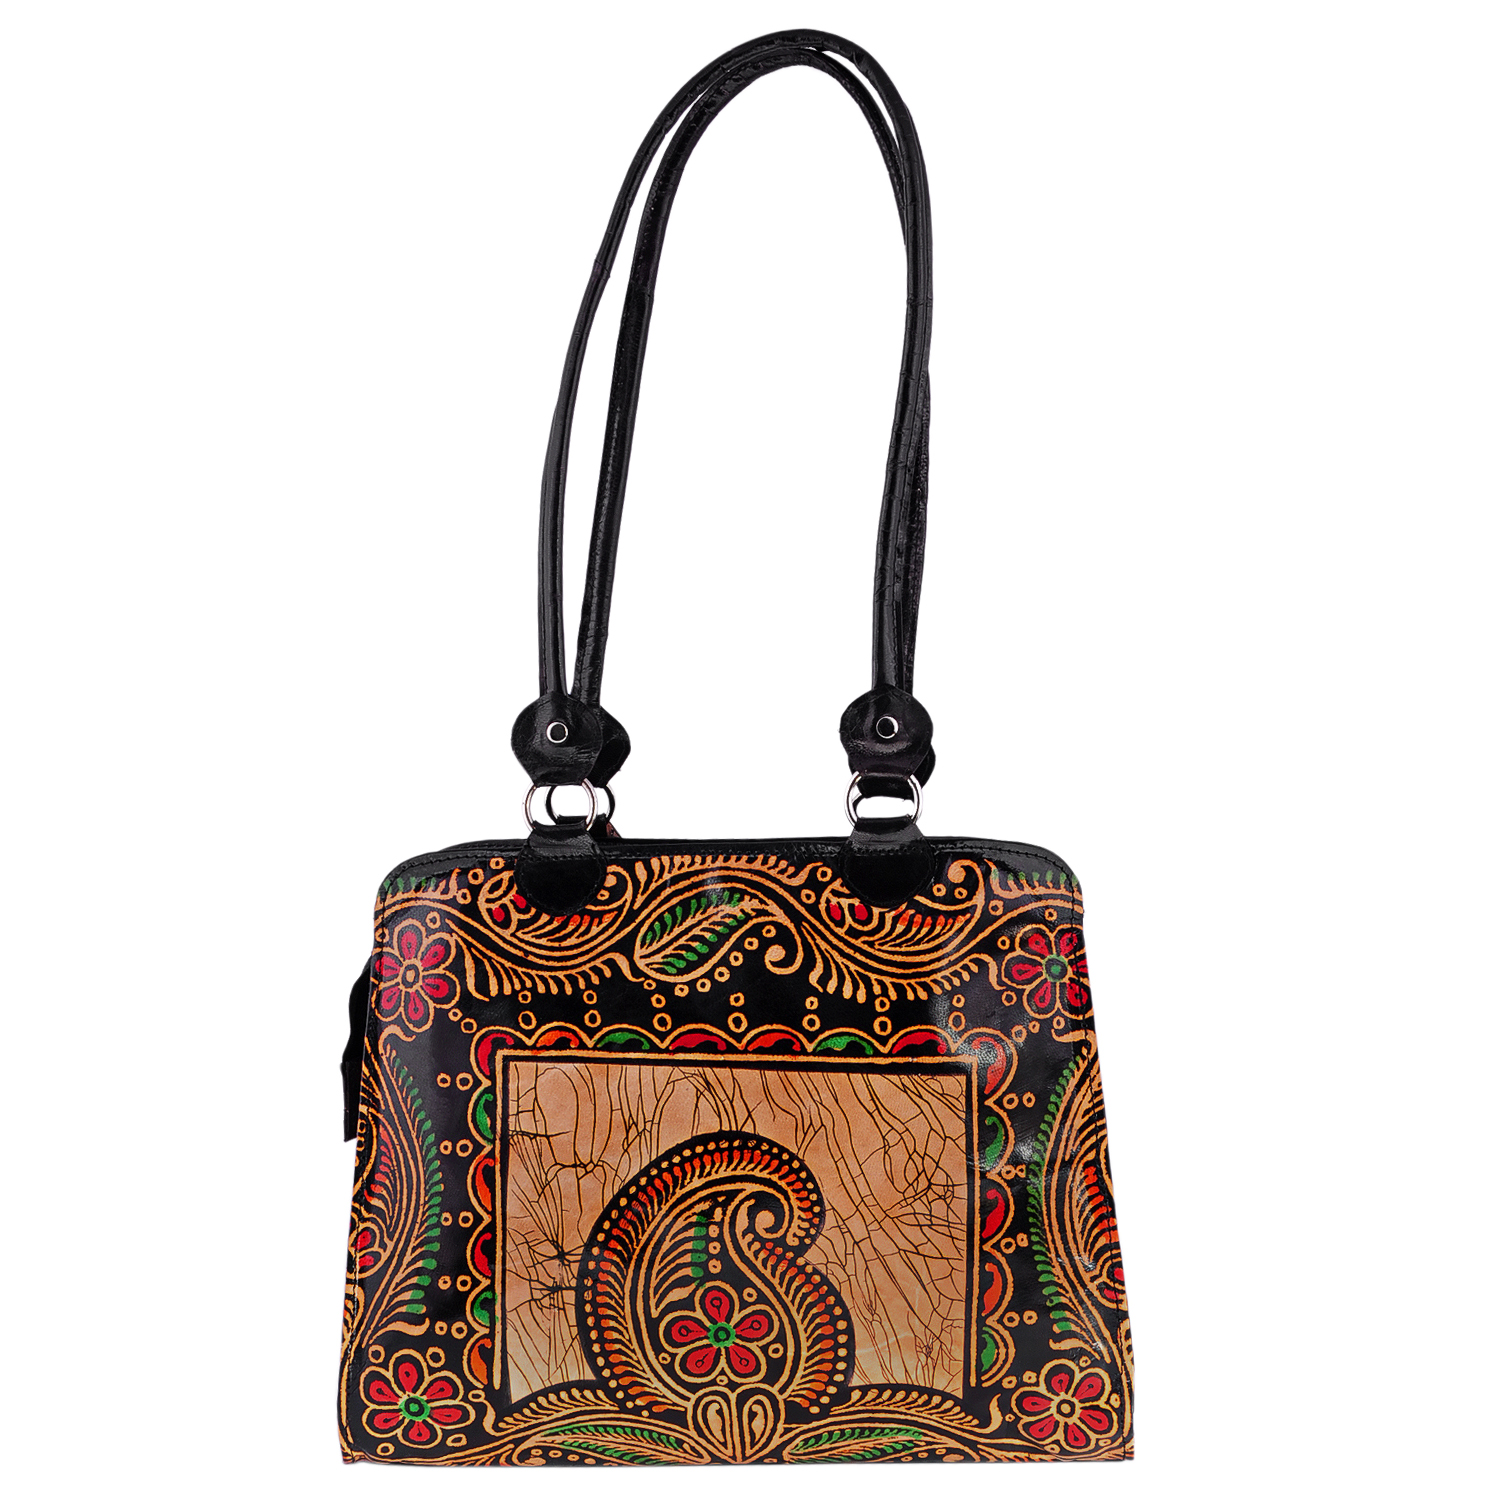 Zint Genuine Leather Tote Bag Shantiniketan Batik Design